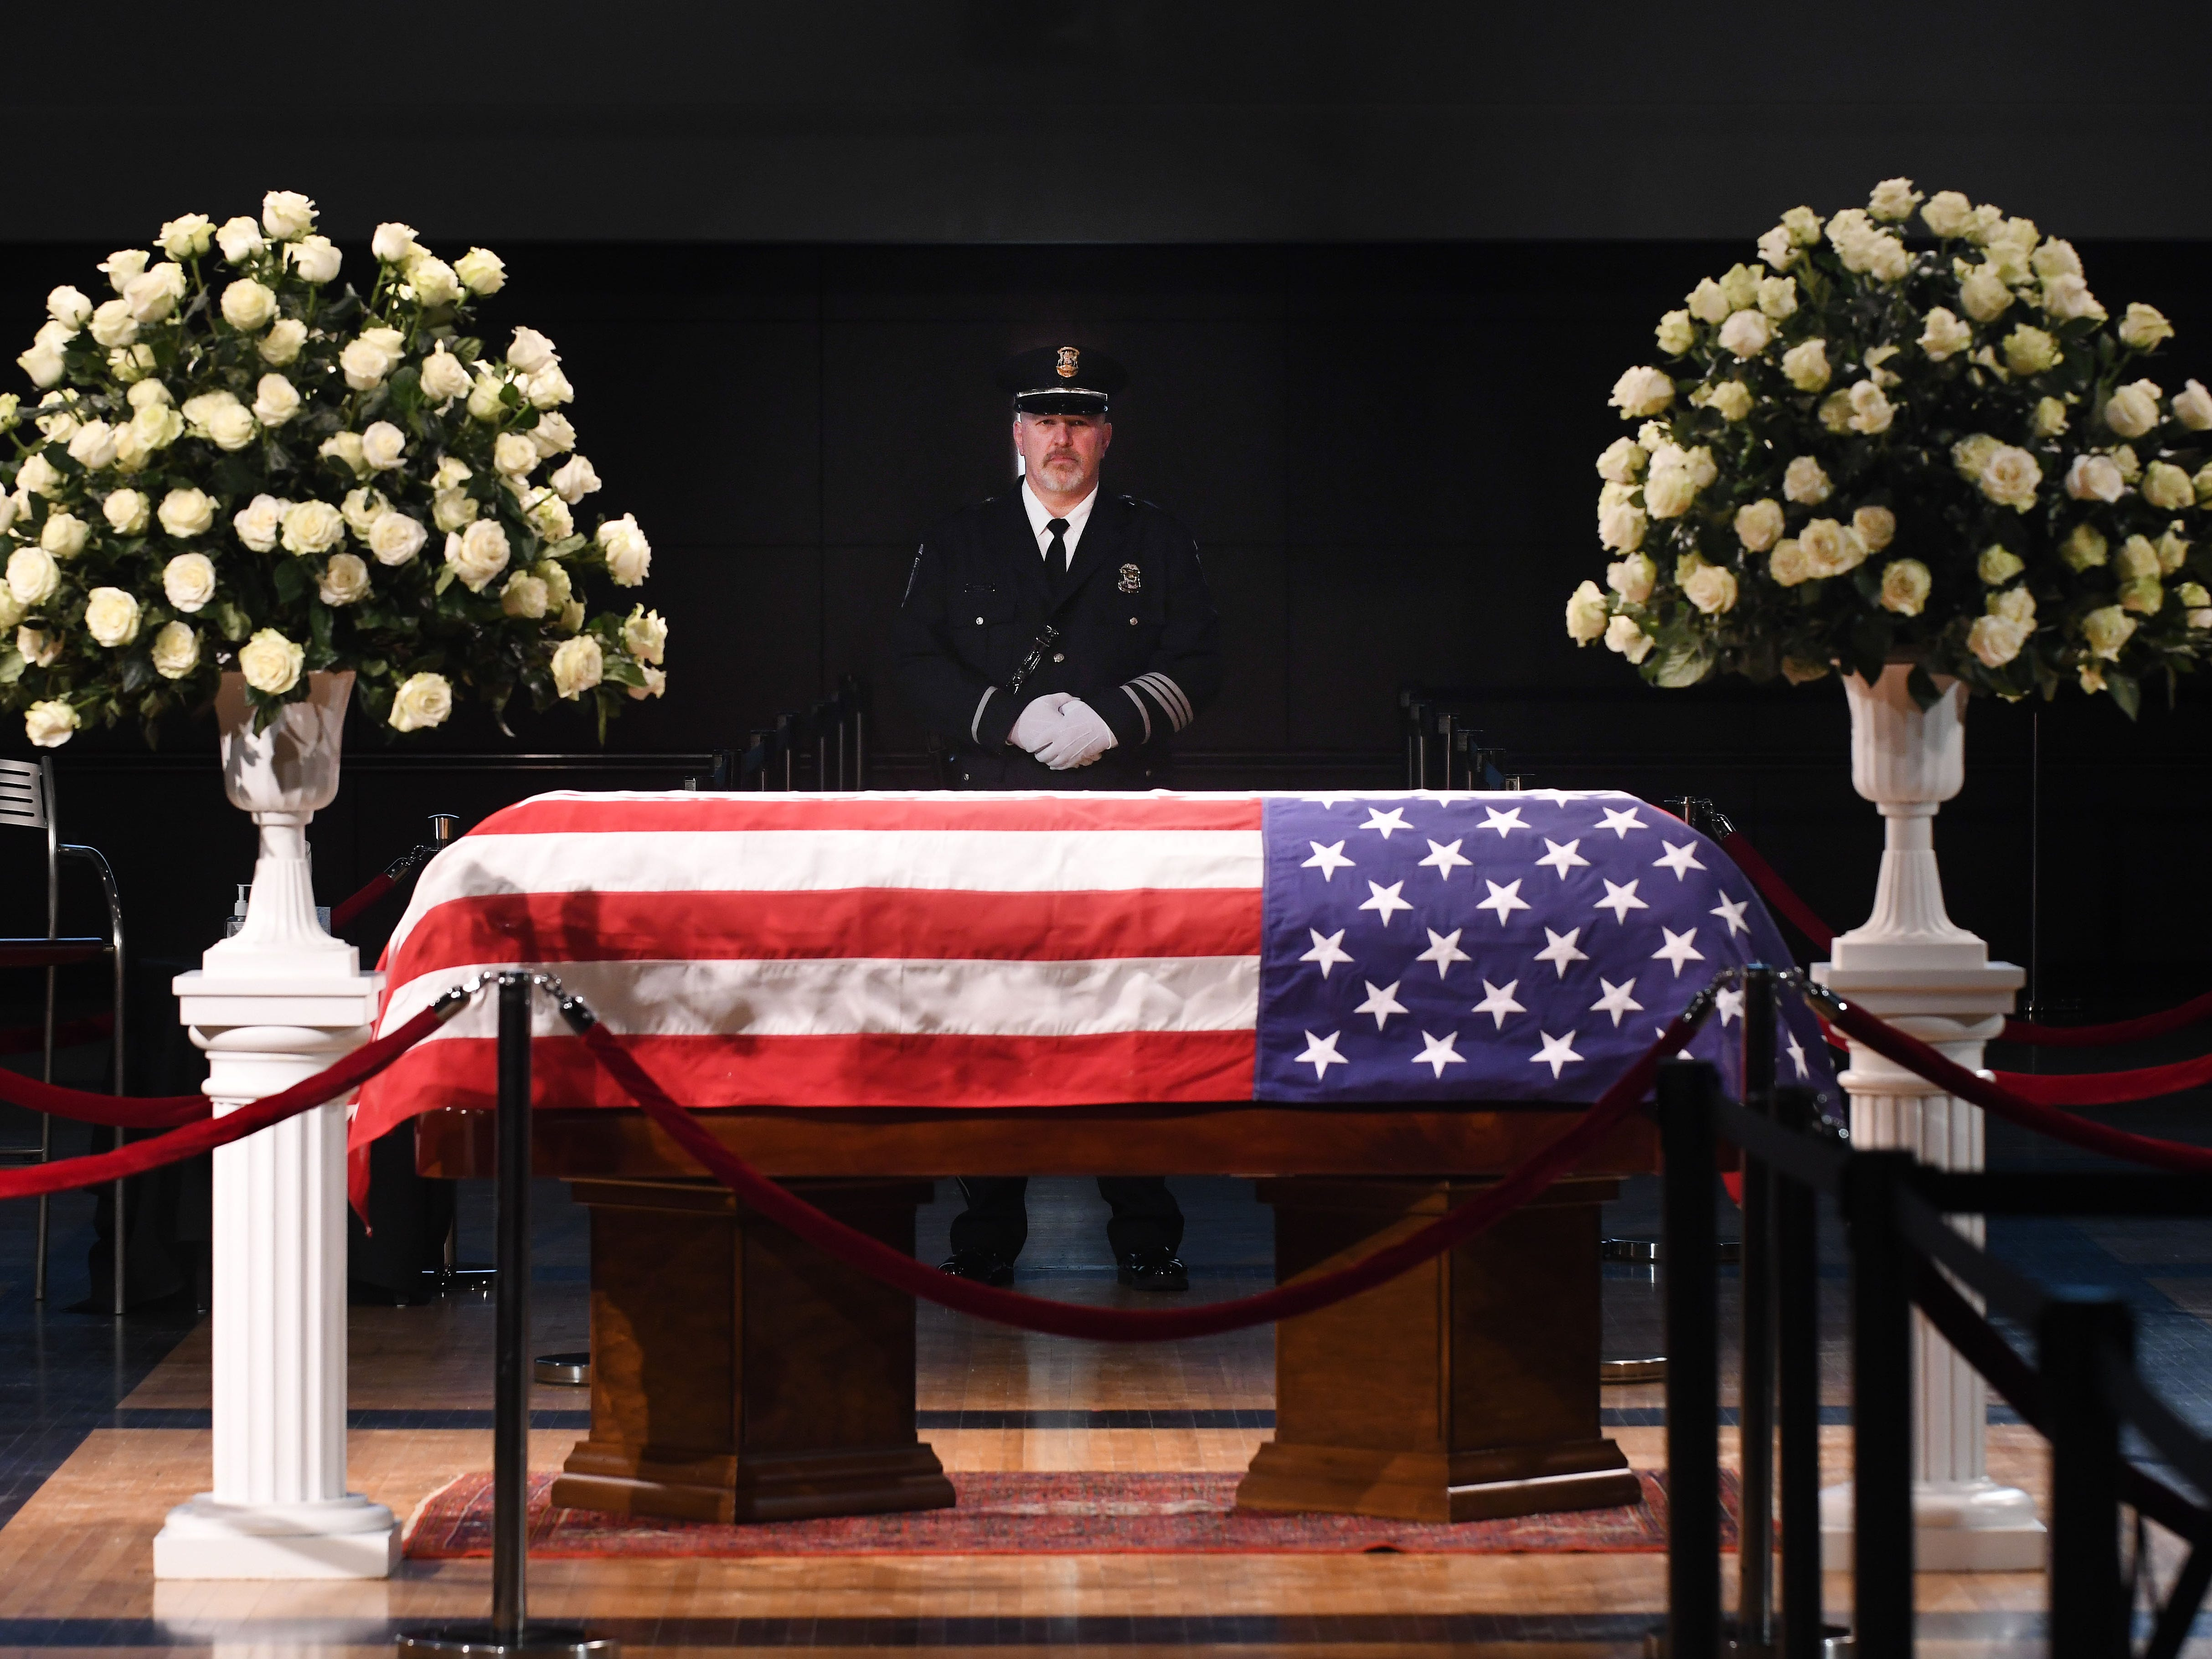 A Dearborn police officer stands behind  the casket of retired U.S. Congressman John D. Dingell.  The Dearborn Democrat  who helped write most of the nation's major environmental and energy laws died Thursday after a battle with cancer. He was 92.